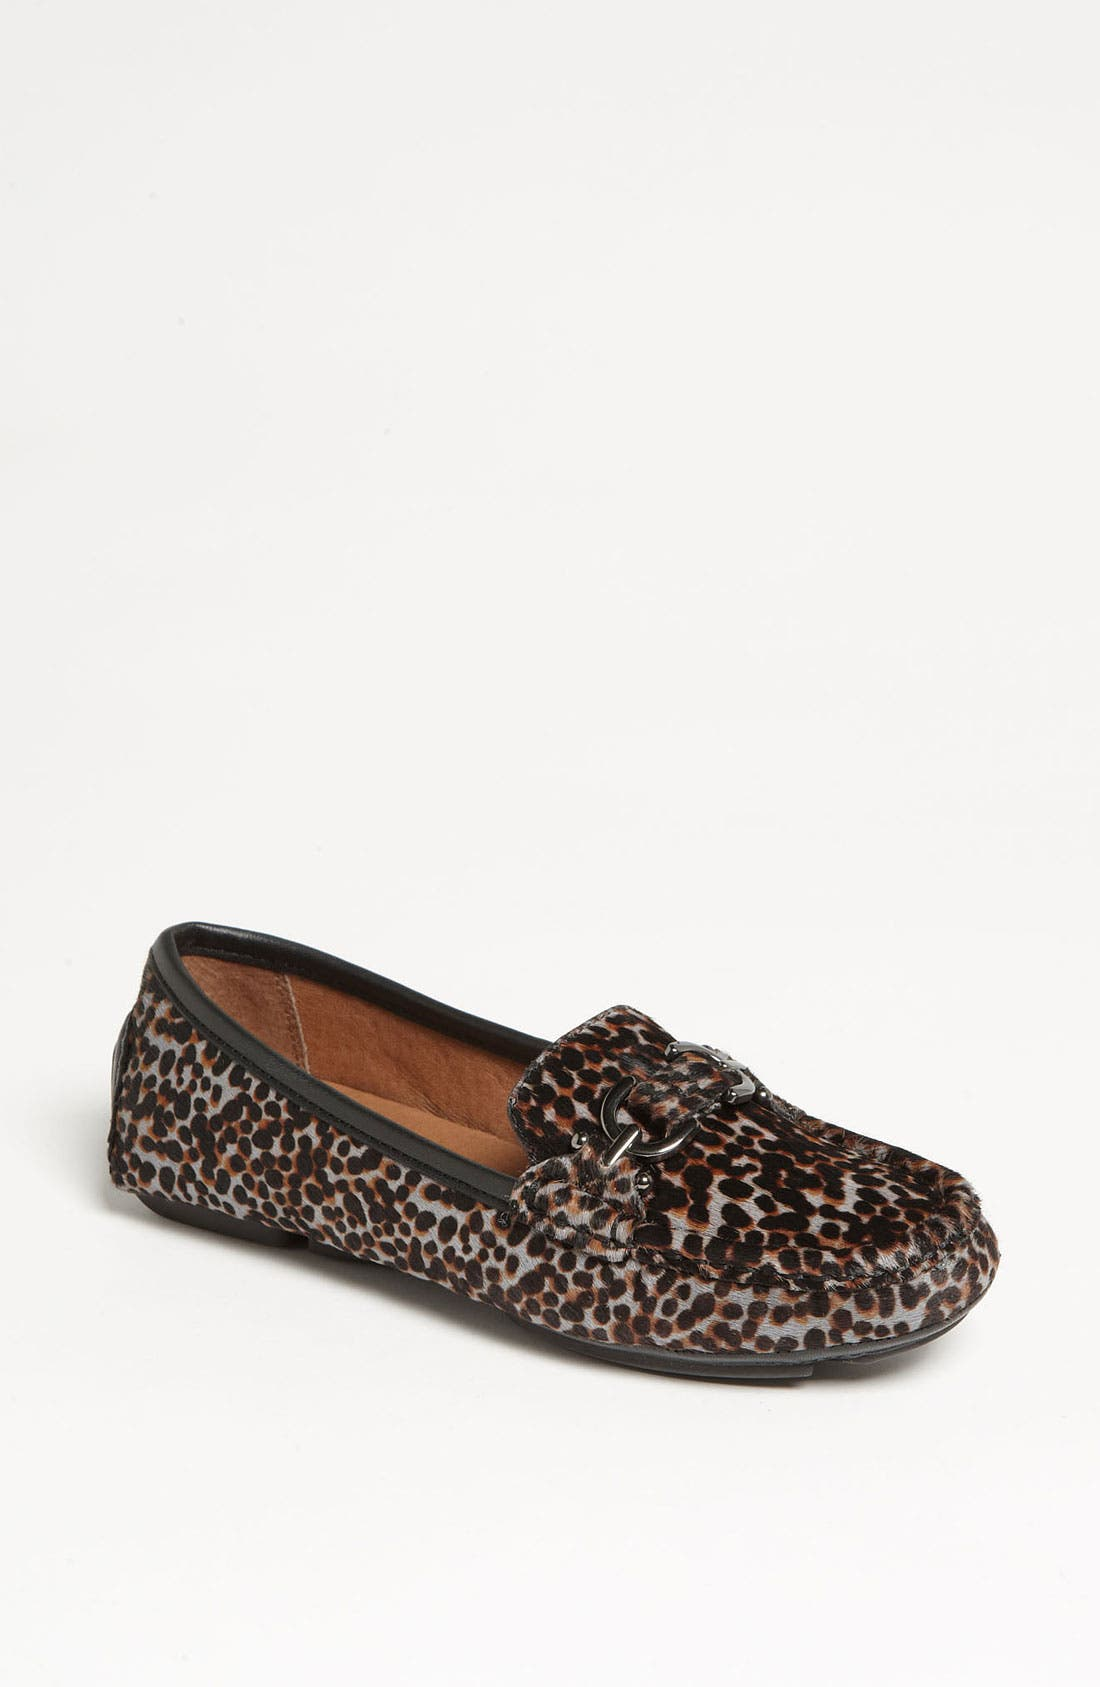 Main Image - Donald J Pliner 'Viky' Loafer